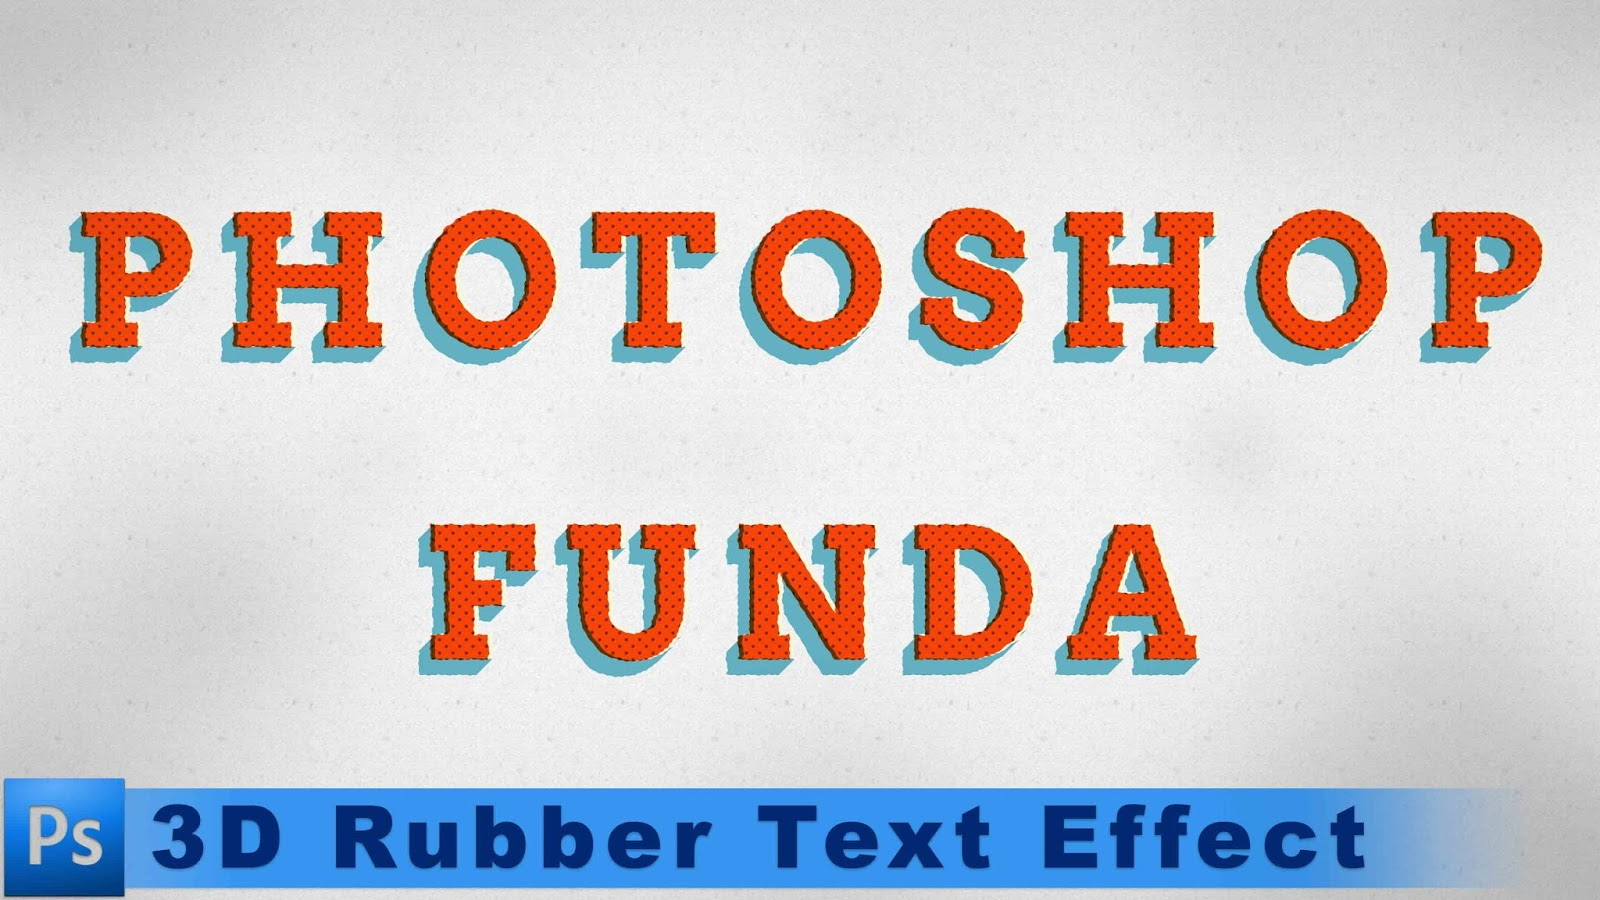 3d rubber text effect in photoshop cc 2017 tutorial very easy in this video i will show you guys how to create rubber looking 3d text effect in photoshop its a very easy try it baditri Gallery